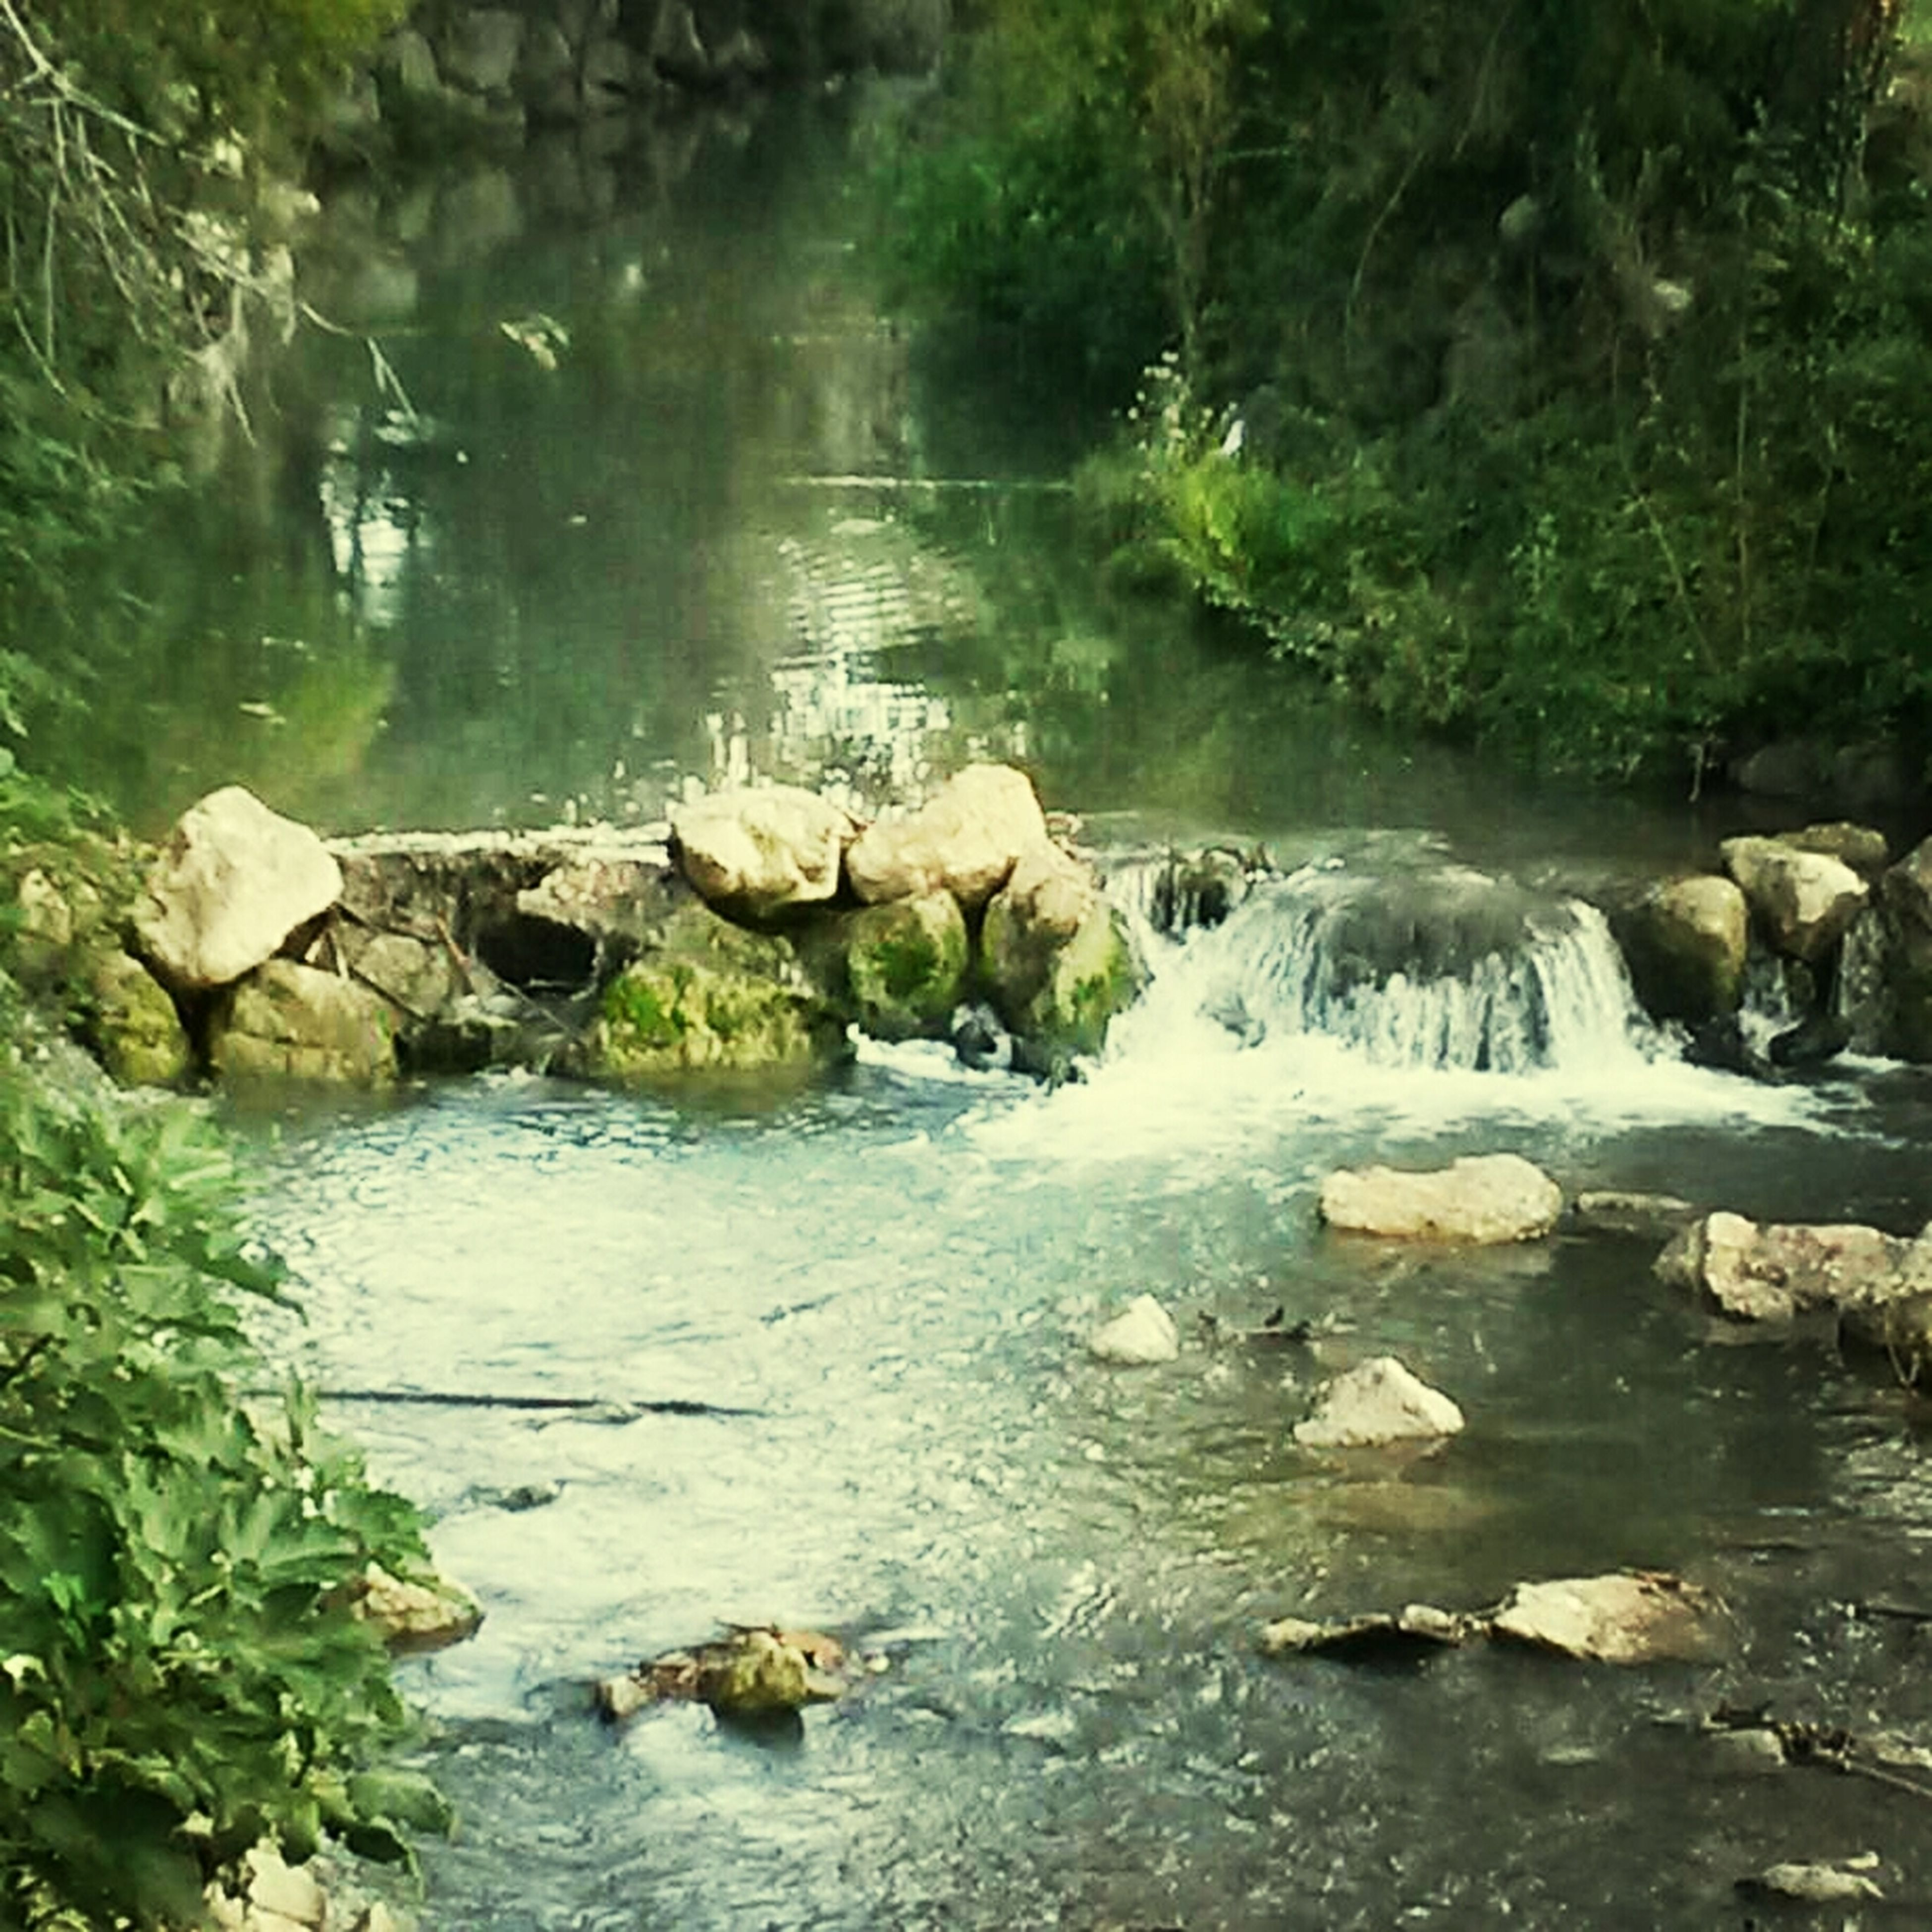 water, rock - object, tranquility, reflection, nature, beauty in nature, tranquil scene, lake, forest, stream, scenics, waterfront, river, rock, tree, idyllic, day, outdoors, no people, non-urban scene